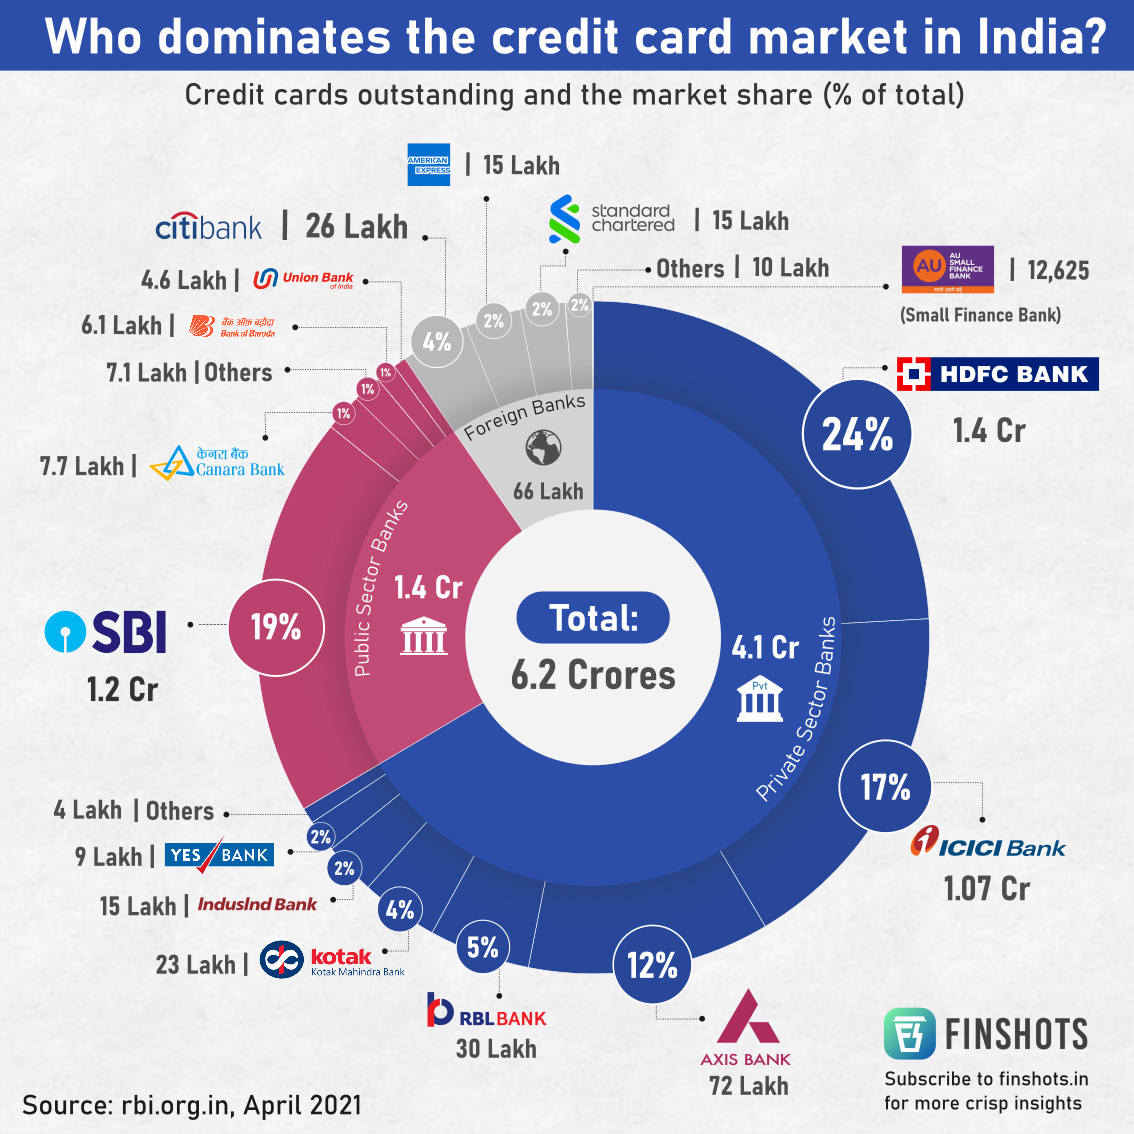 Who dominates the credit card market in India?